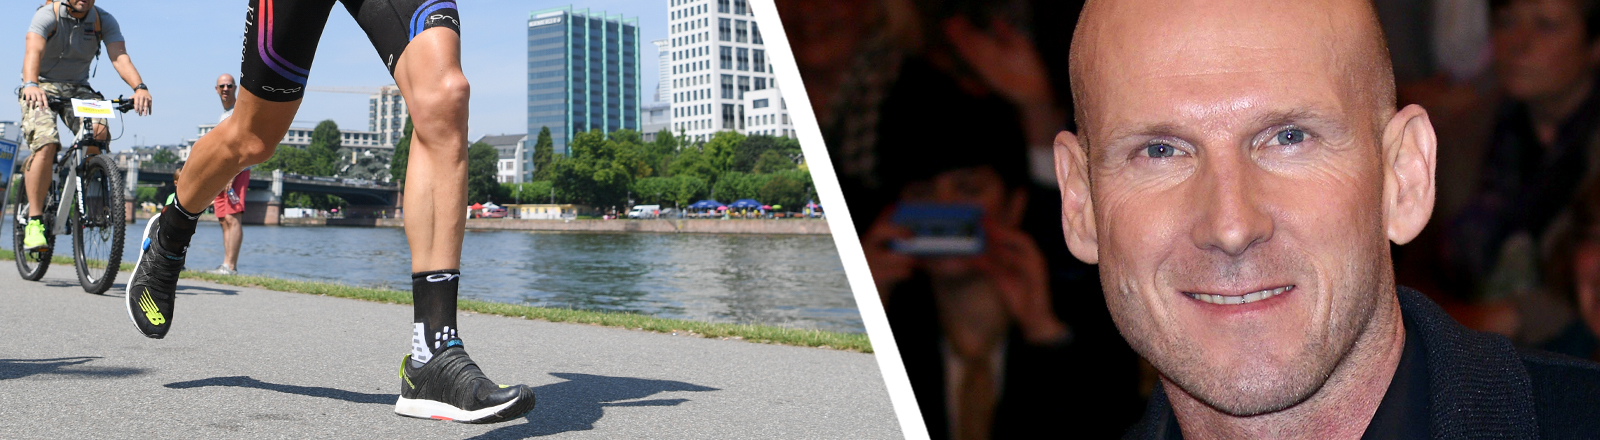 Collage: Ironman in Frankfurt | Triathlet Elmar Sprink